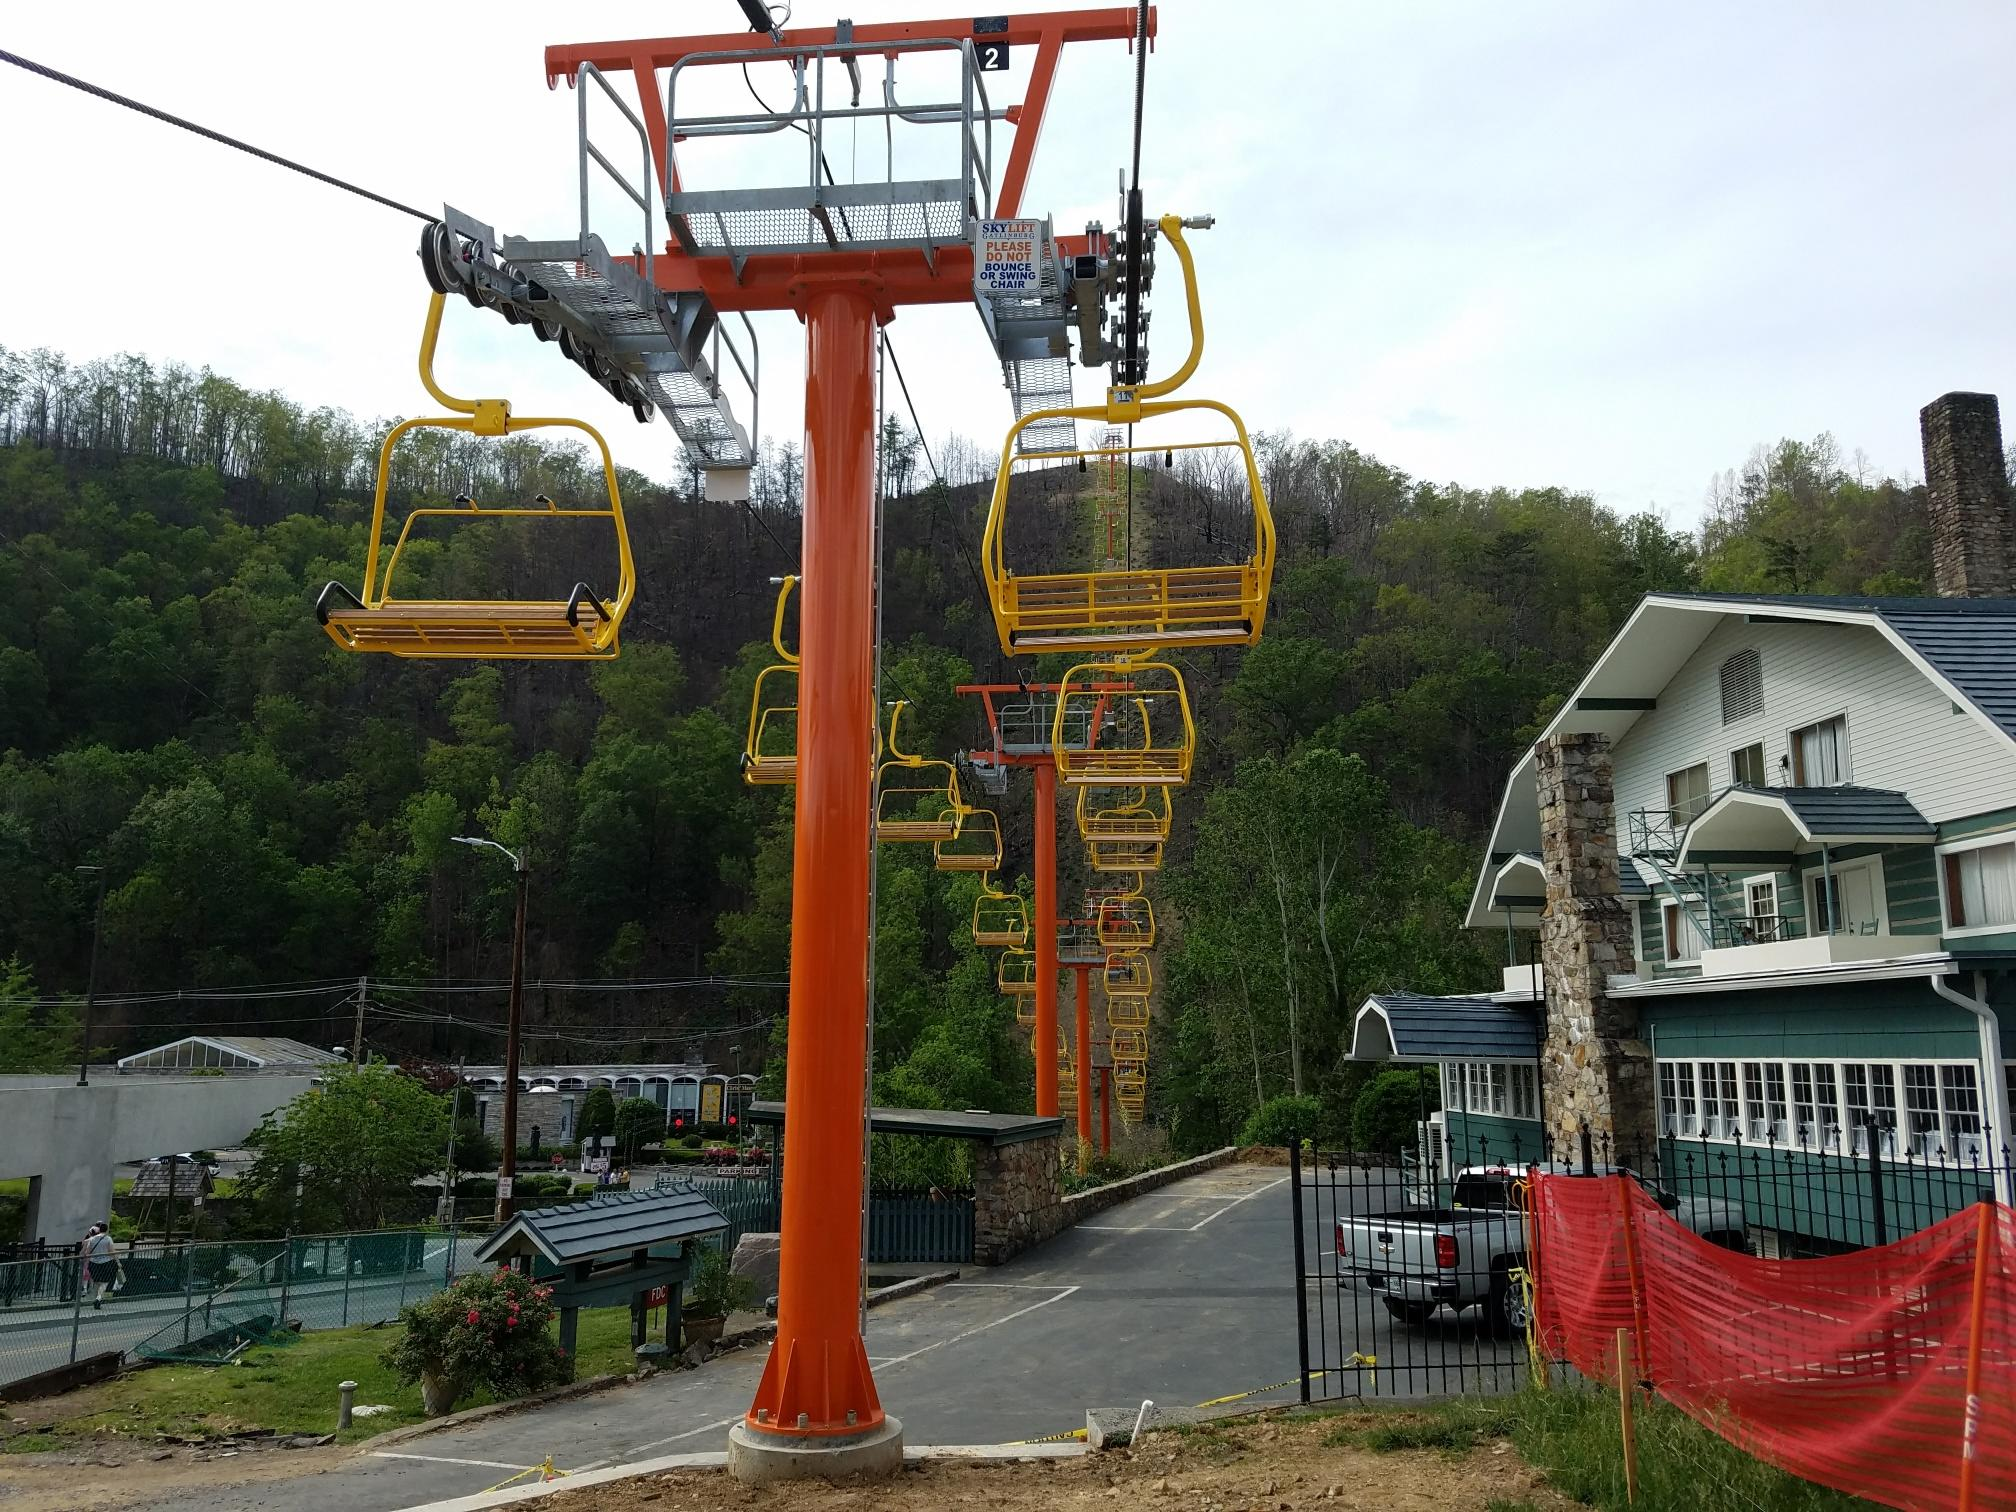 Boyne Resorts Announced Construction Of The New $2.4 Million Lift In Early  February And Received Its Operating Permit Less Than Three Months Later On  April ...